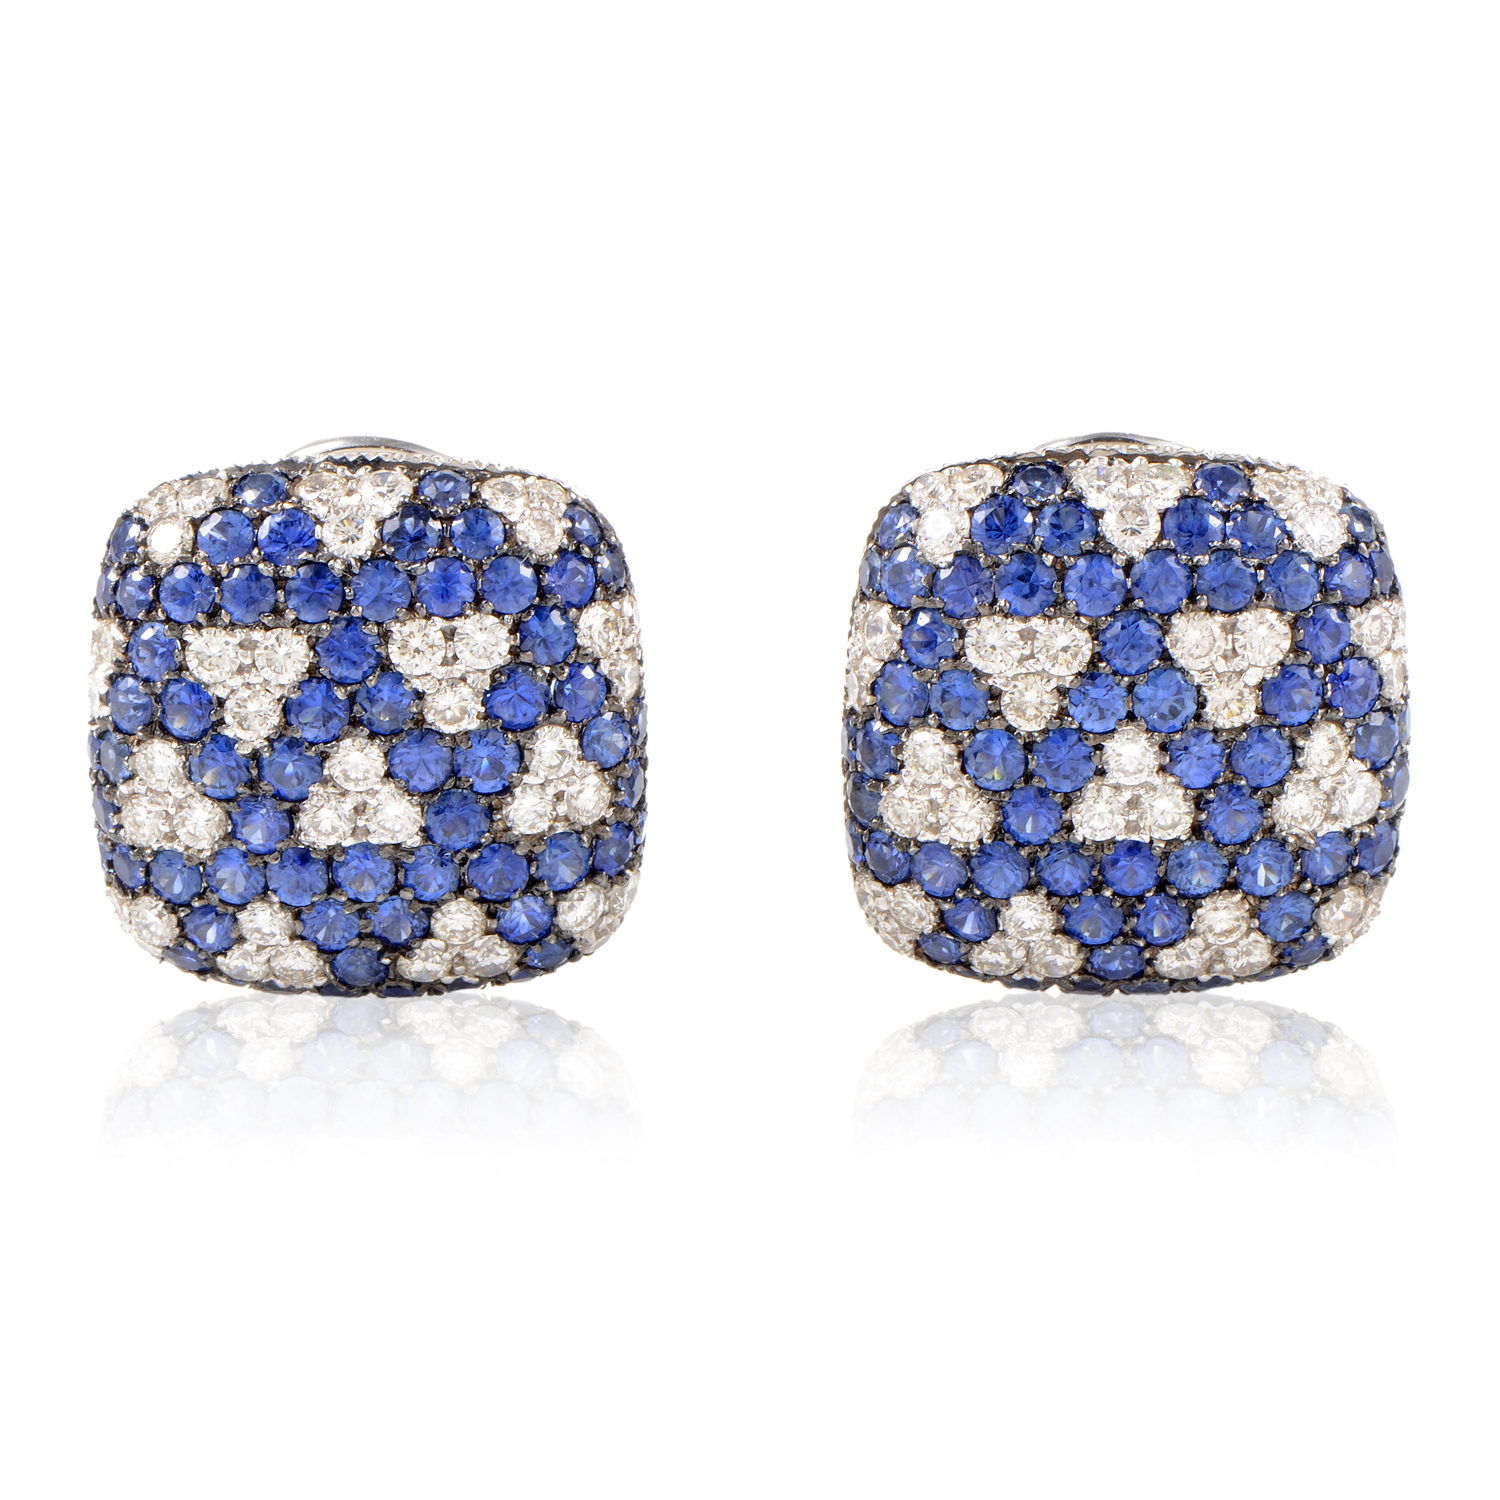 Italian Collection 18K White Gold Diamond & Sapphire Square Earrings 21965520